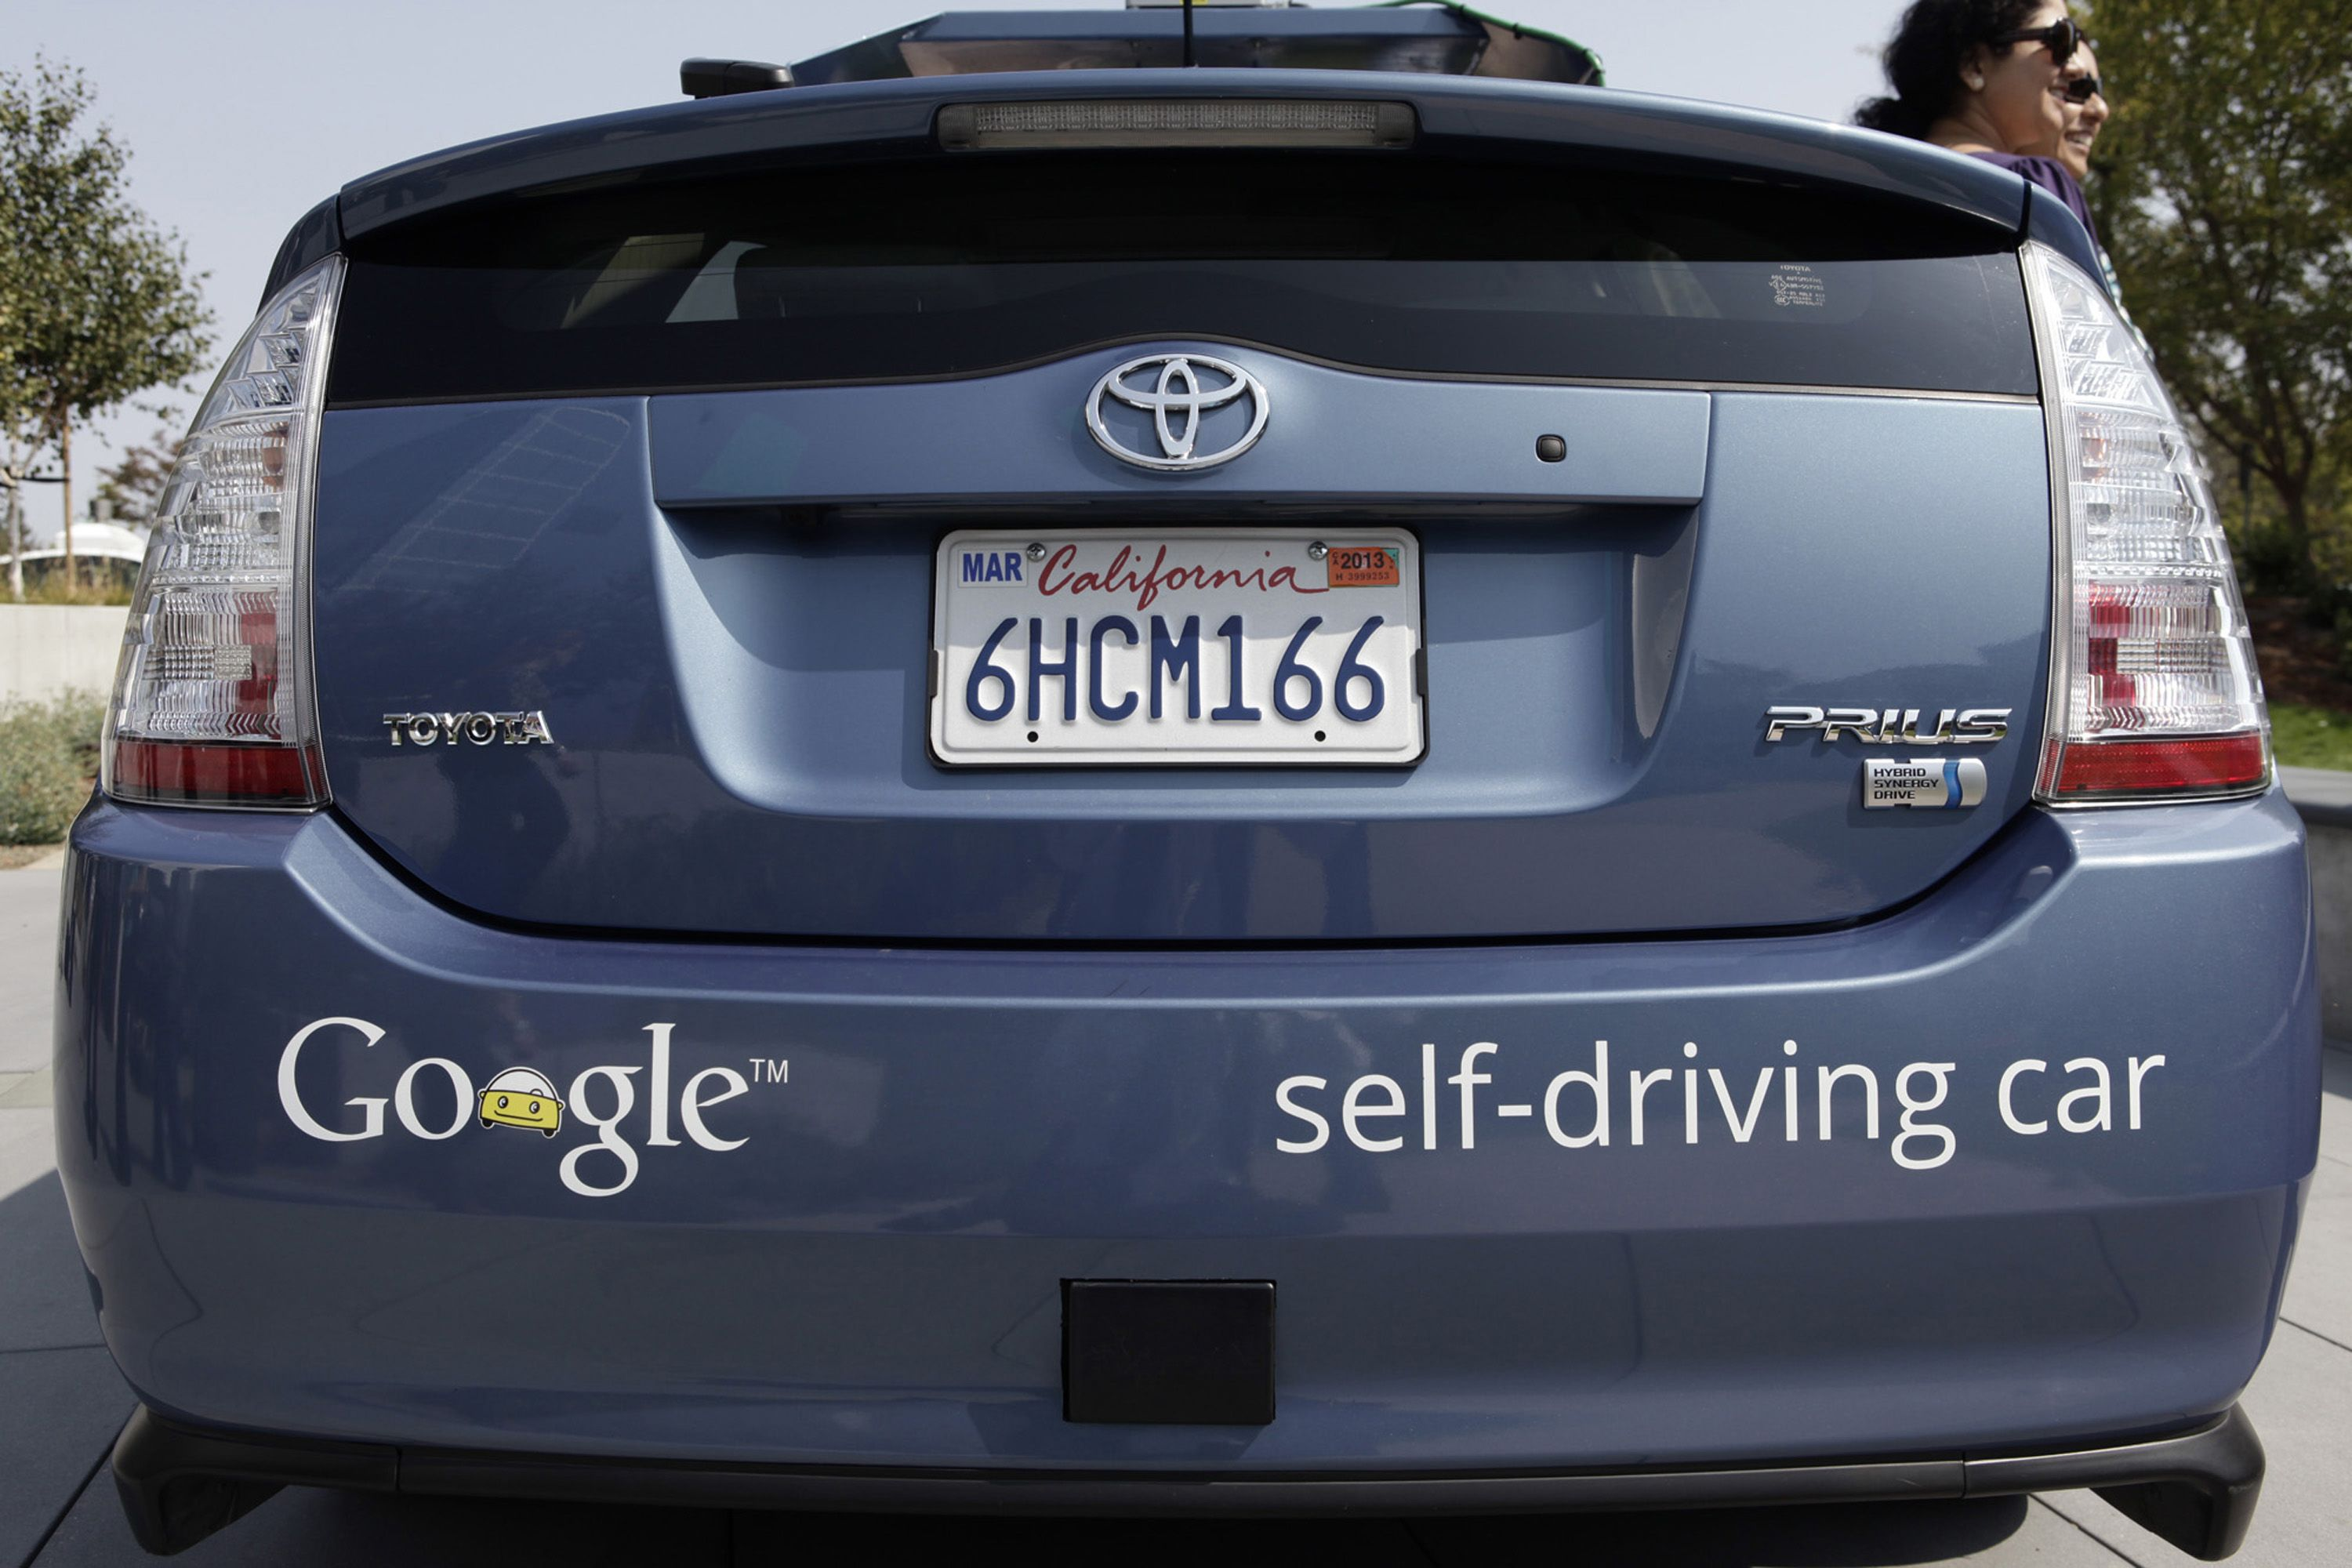 A driverless car is on display at Google Headquarters in Mountain View, Calif., on September 25, 2012. (Gary Reyes/Bay Area News Group/TNS)